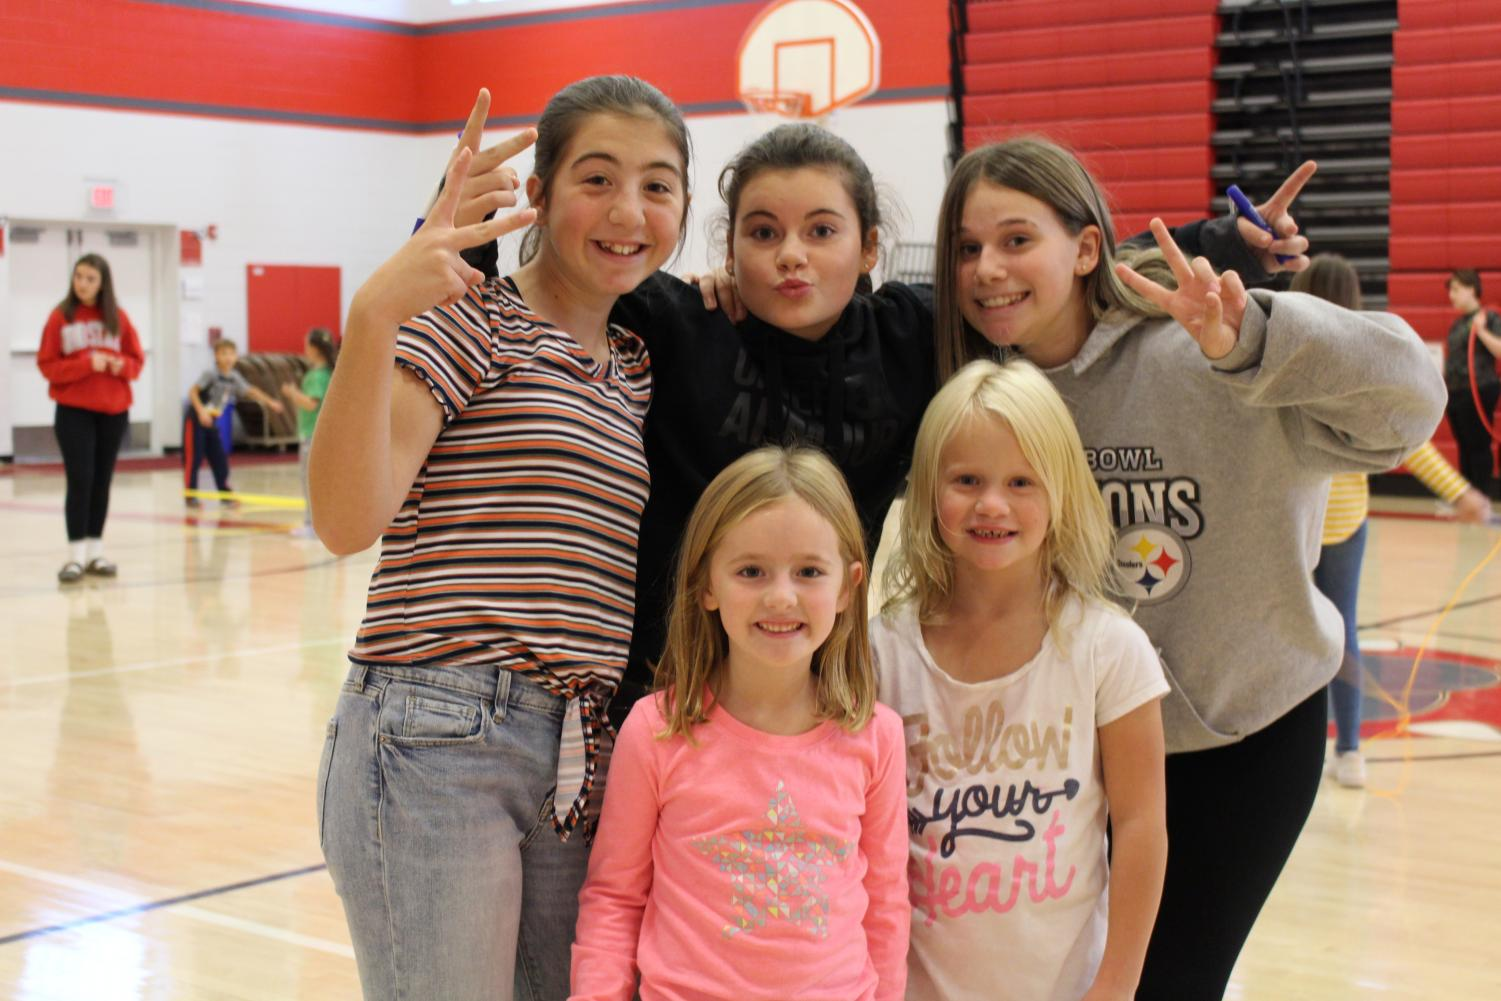 Seventh graders Olivia Henderson, Annabelle Komlos, and Malina Pelaia help first graders Mikaylee Kuntz and Josie Hall jump rope, during their gym class.